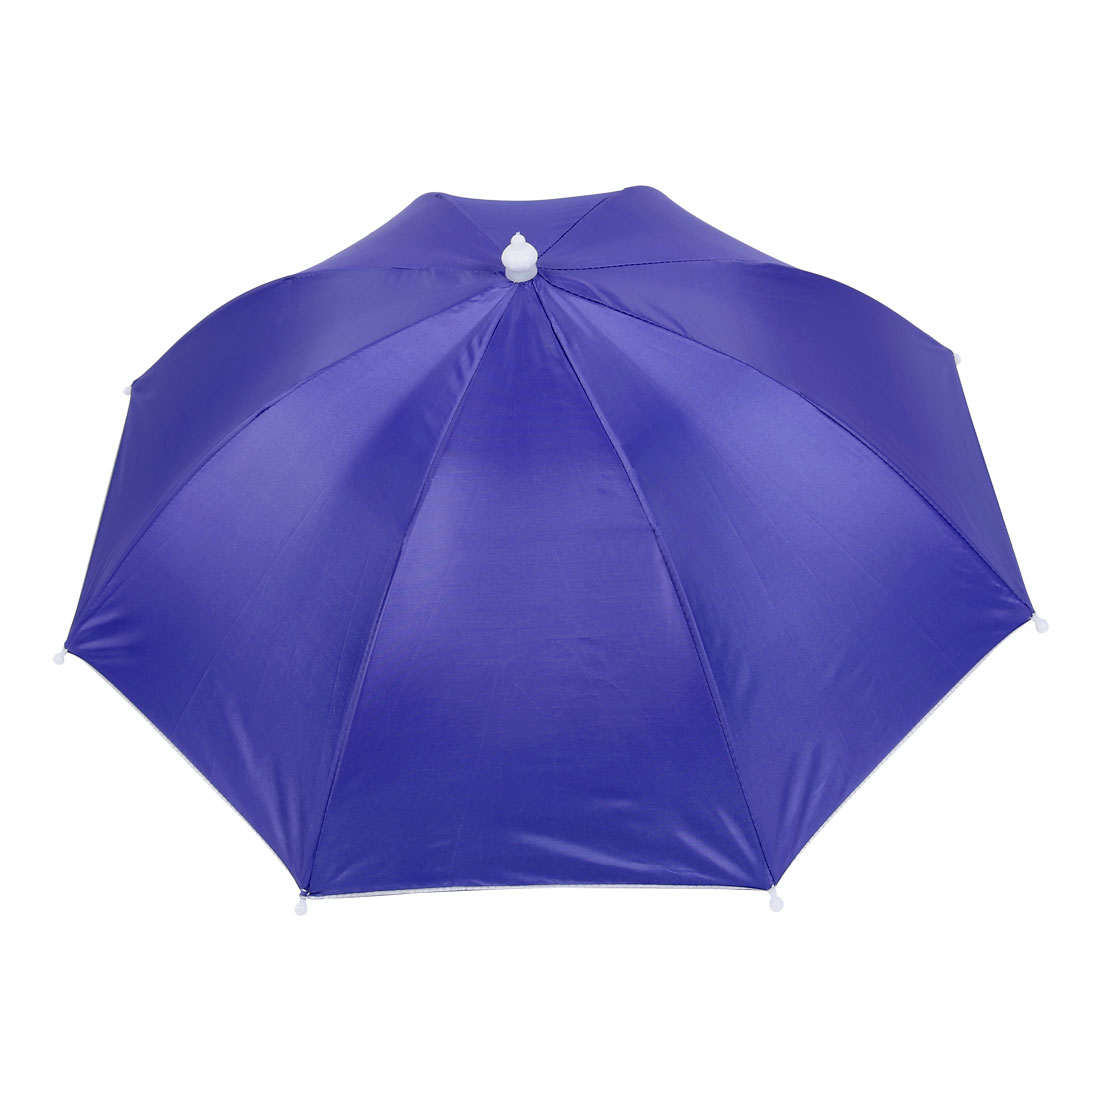 Outdoor Fishing Sports Hands Free Elastic Band Umbrella Hat Headwear Purple